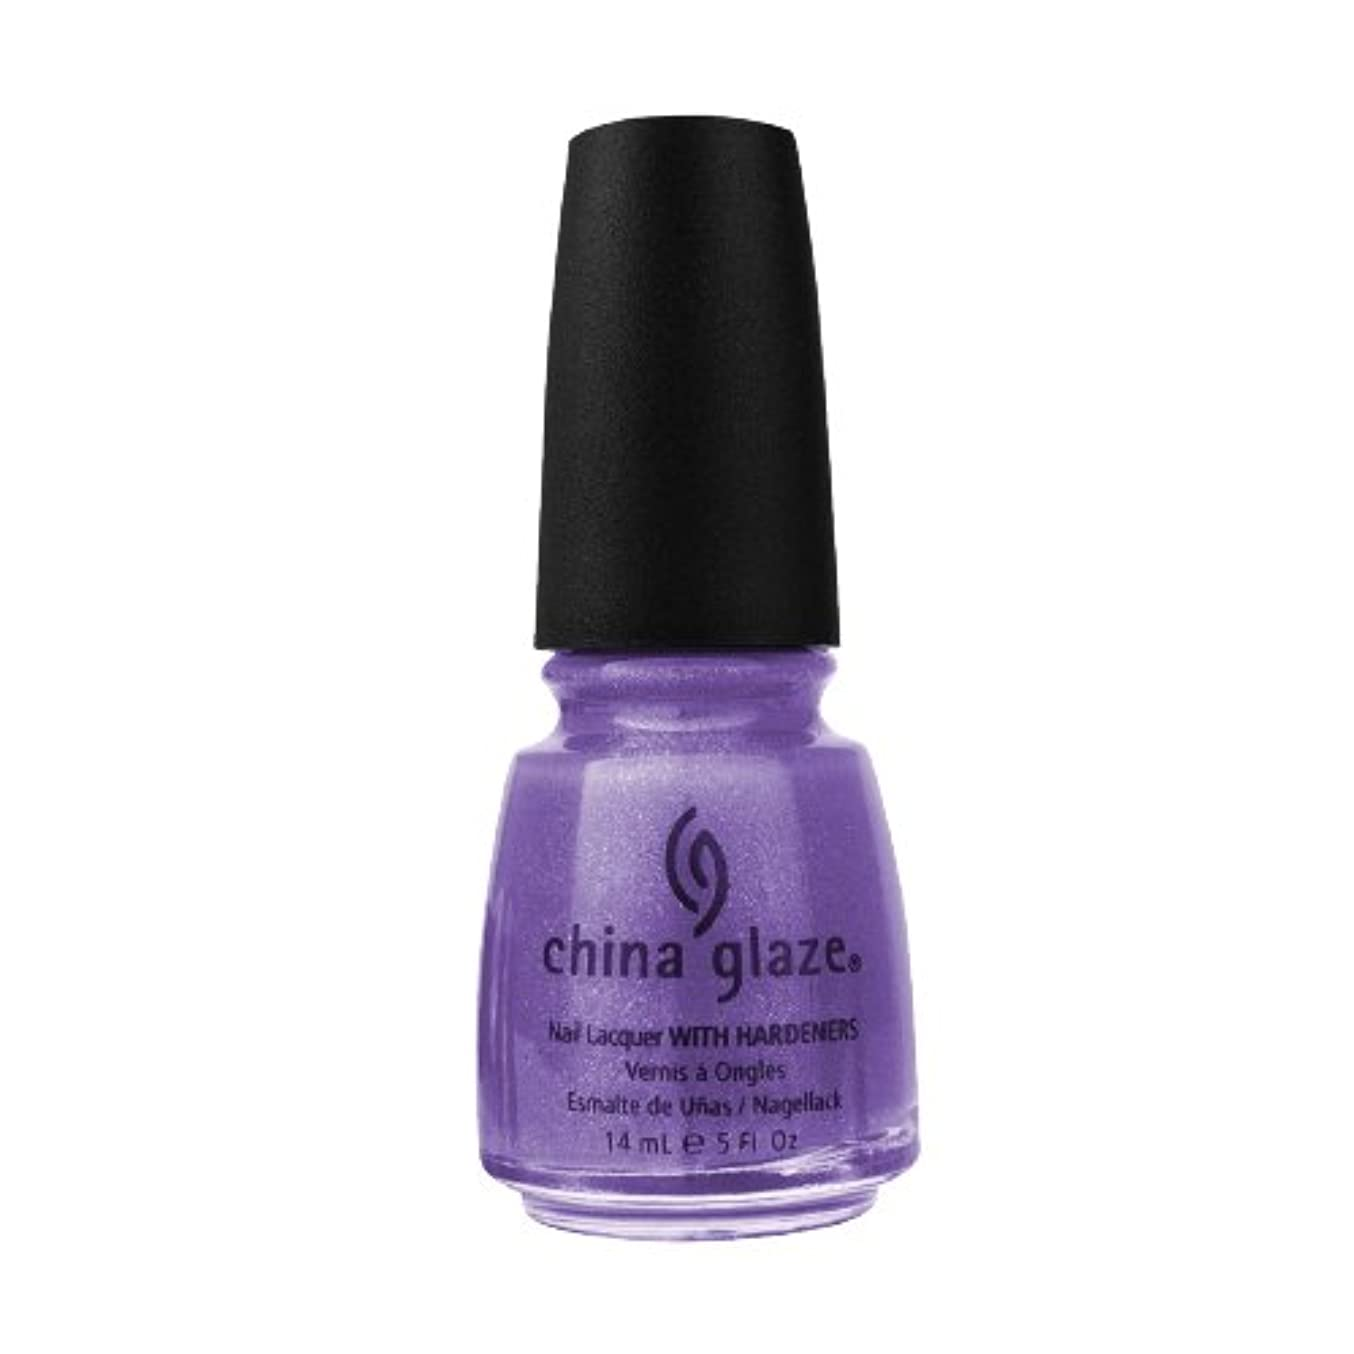 並外れた女将透明にCHINA GLAZE Nail Lacquer with Nail Hardner 2 - Grape Juice (並行輸入品)